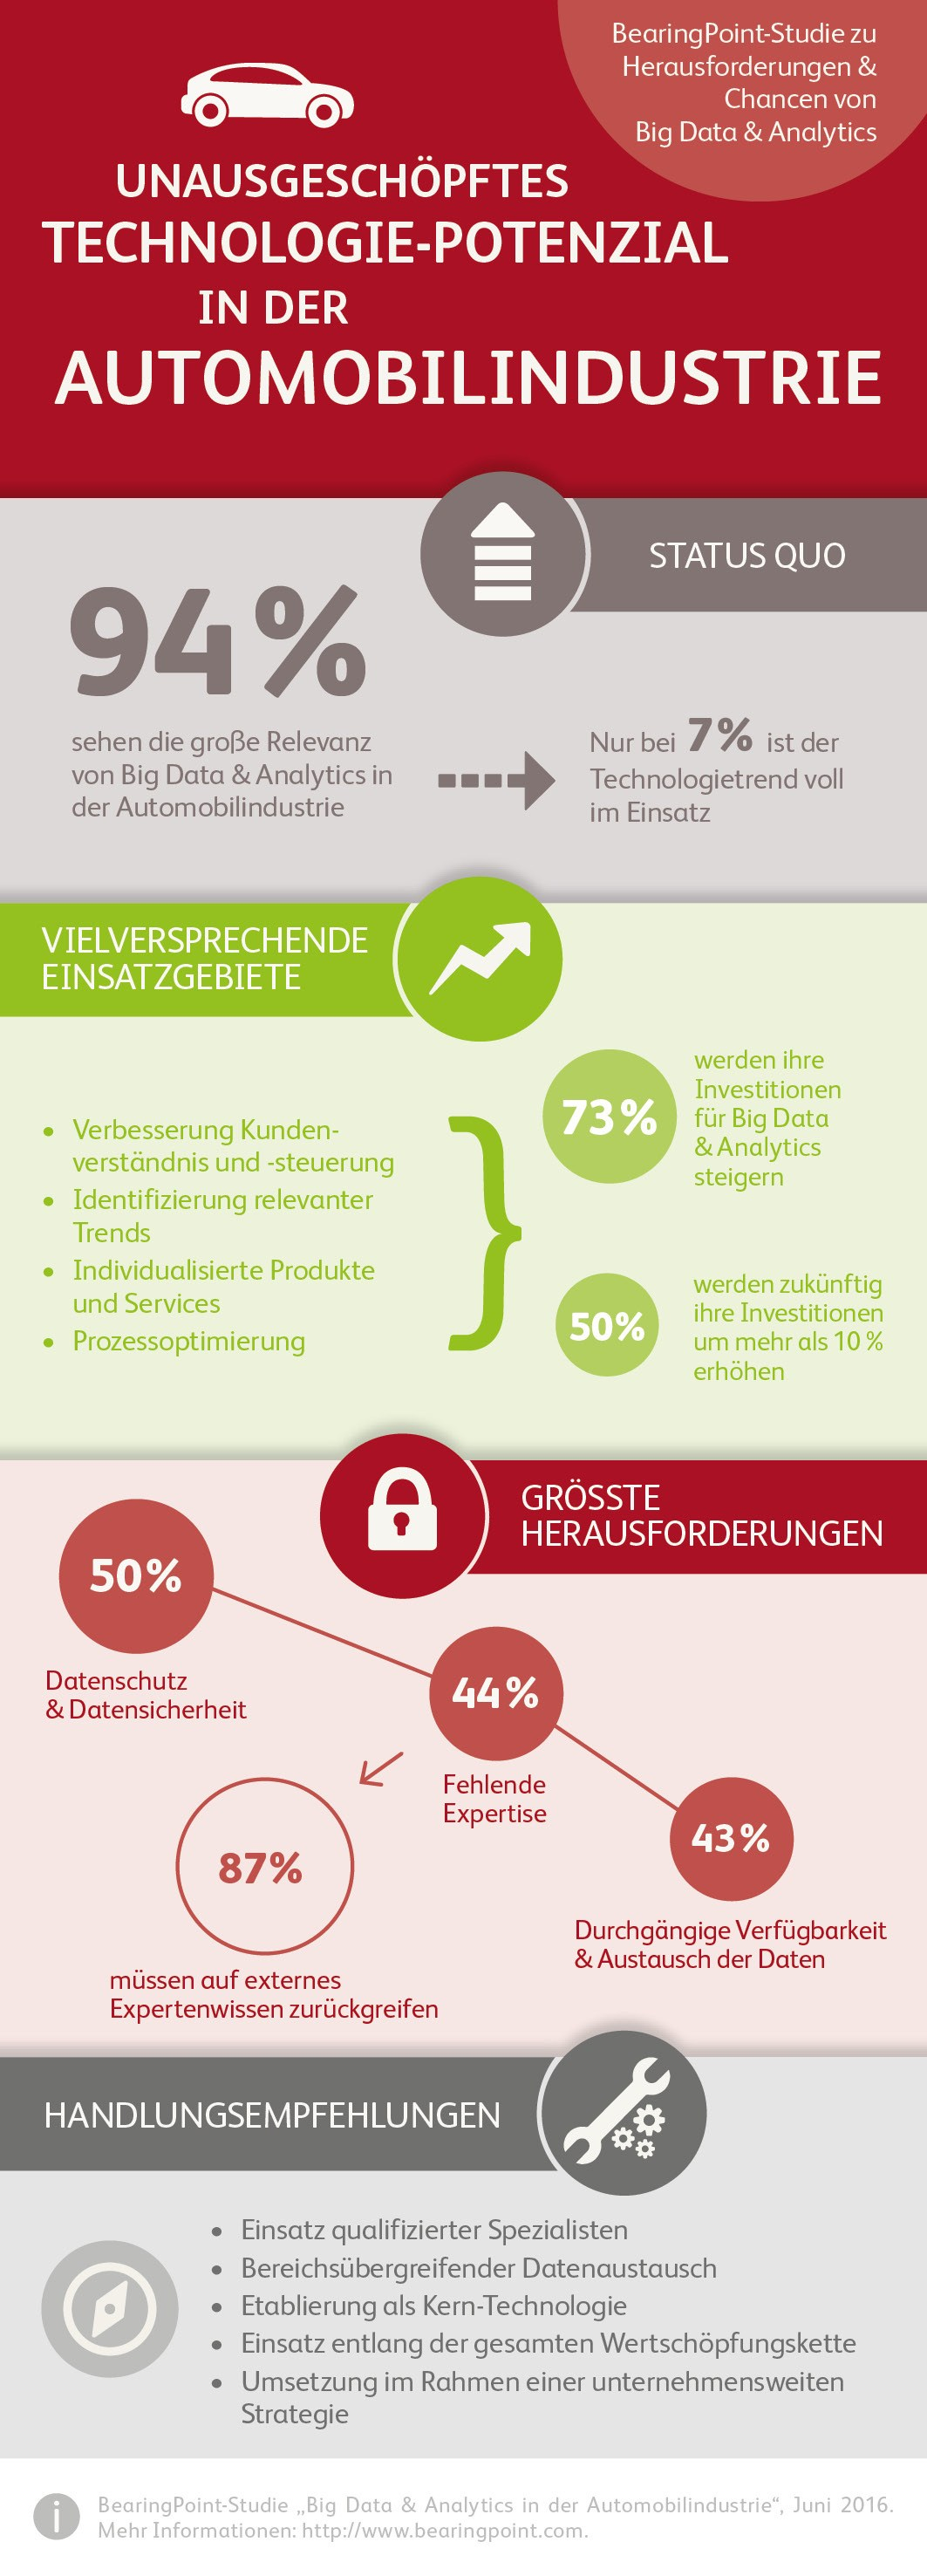 infografik-bearingpoint_big-data-analytics-in-der-automobilindustrie_241016